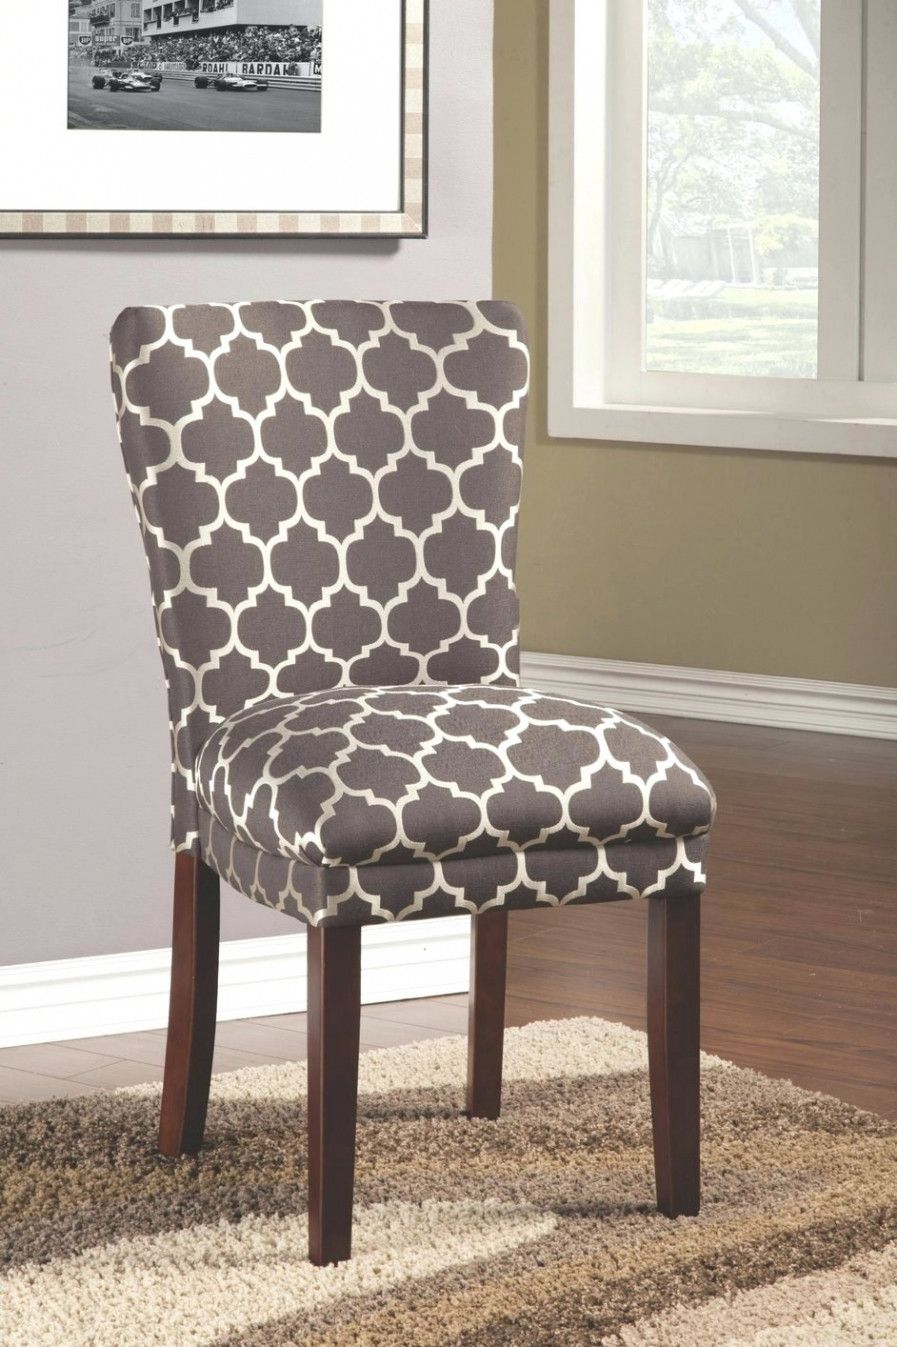 99 Dining Chair Covers Uk Vintage Modern Furniture Check More At Http Www Ezeebreathe